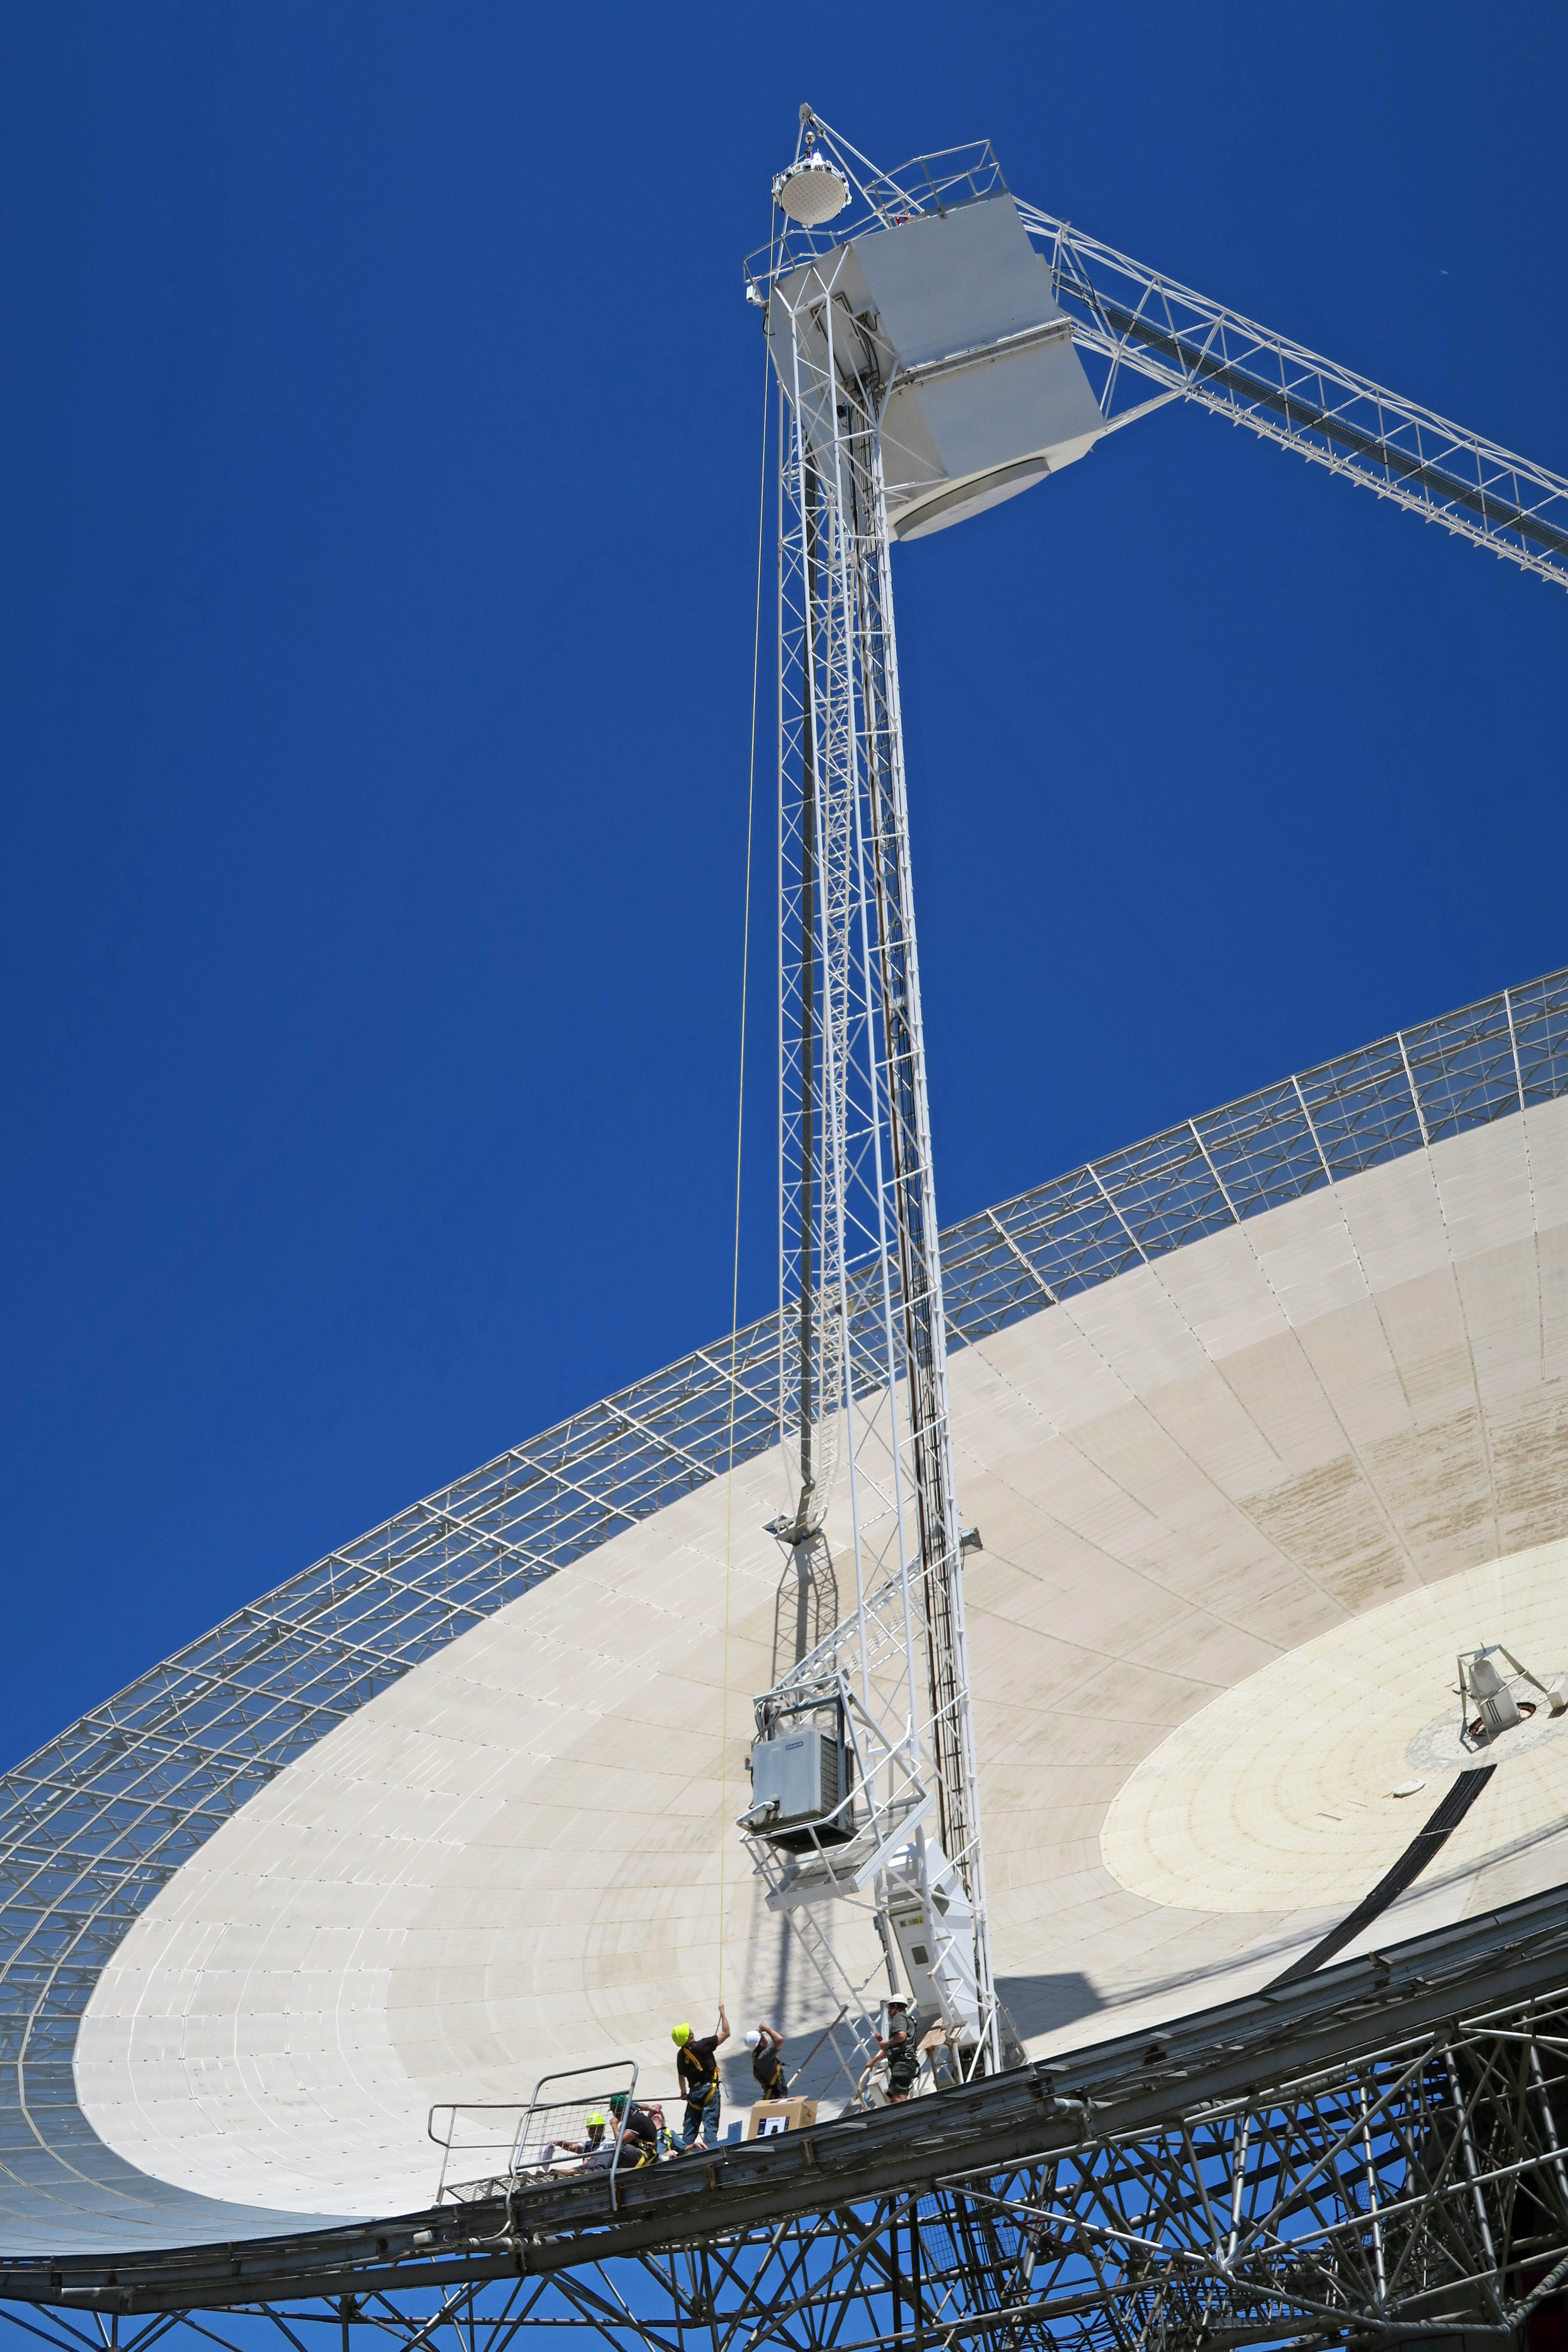 The PAF is hoisted onto our Parkes telescope for testing.